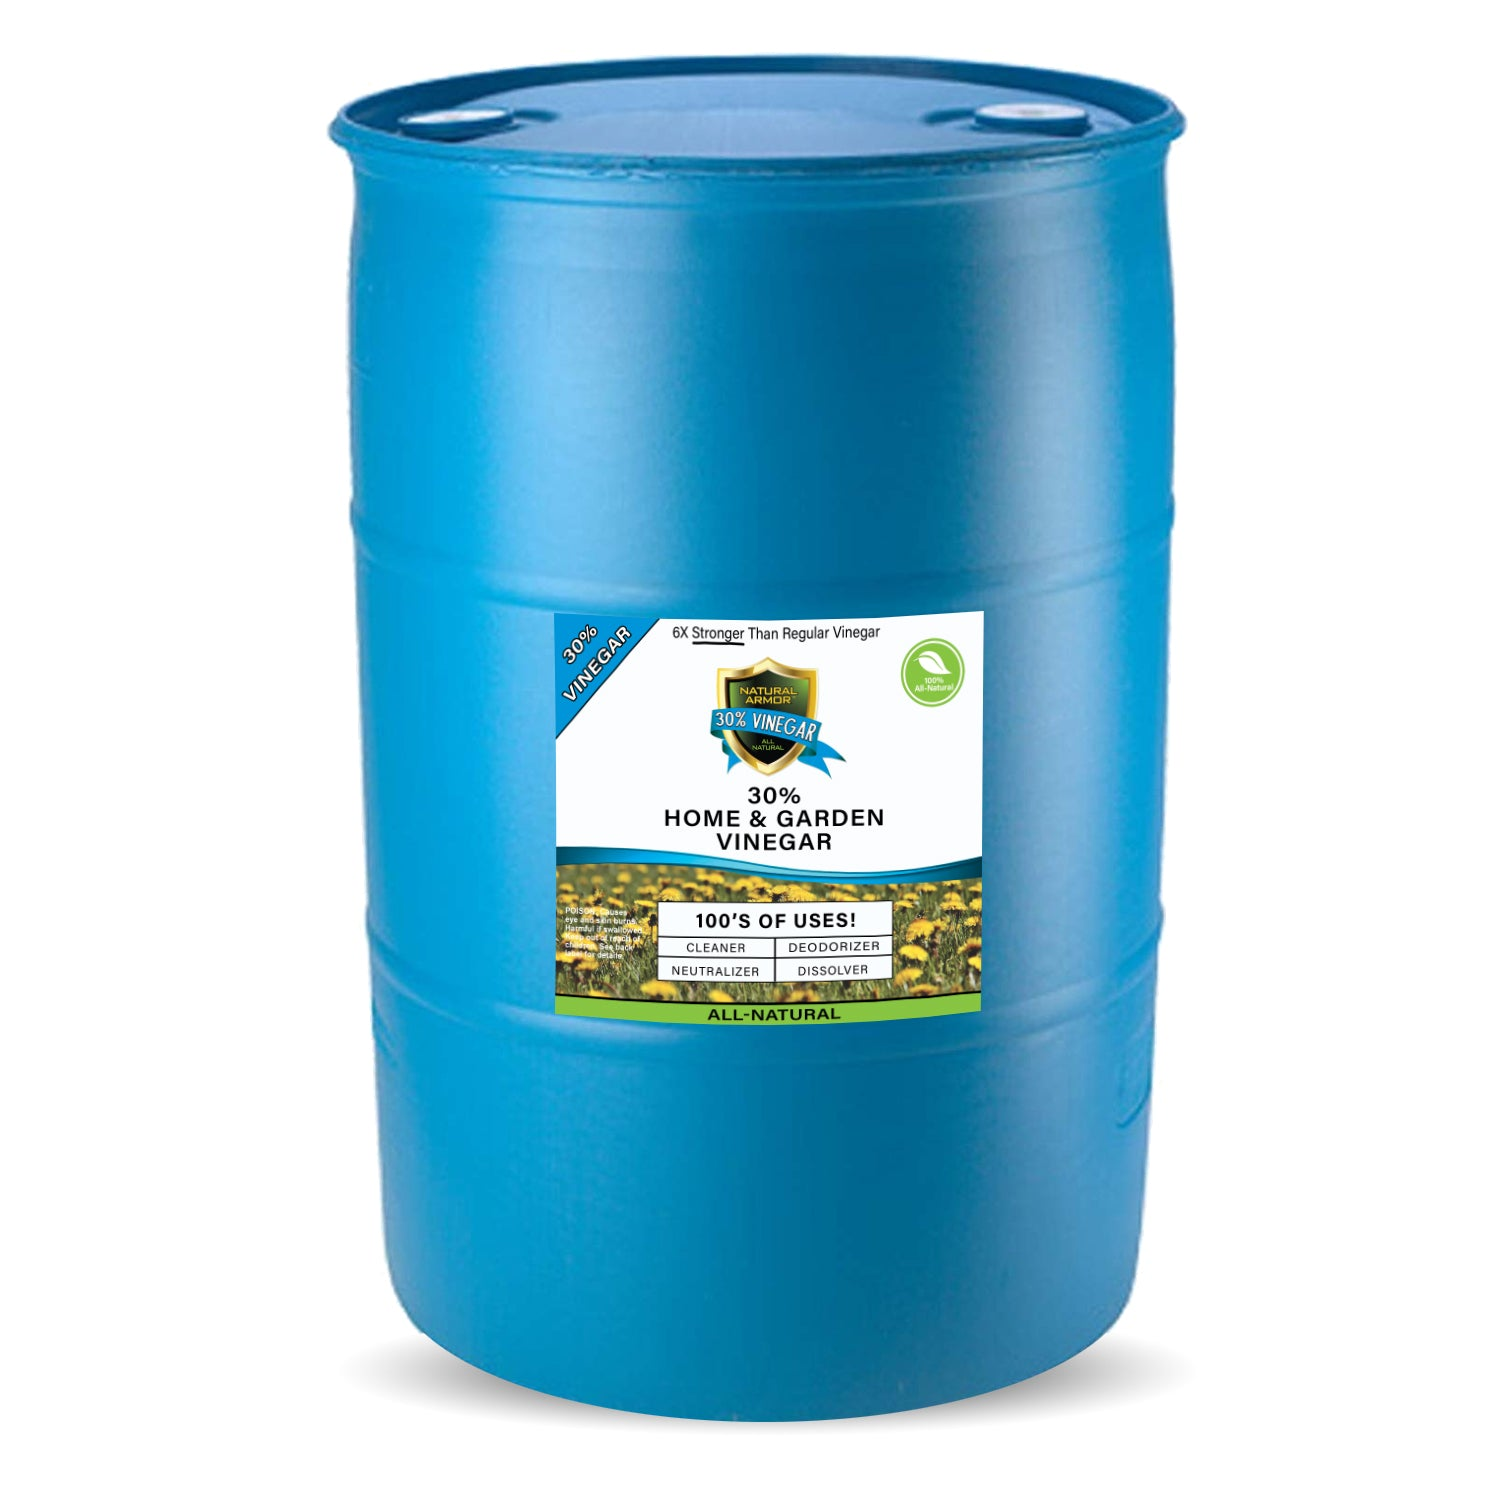 30% Vinegar - (1) 55 GALLON DRUM